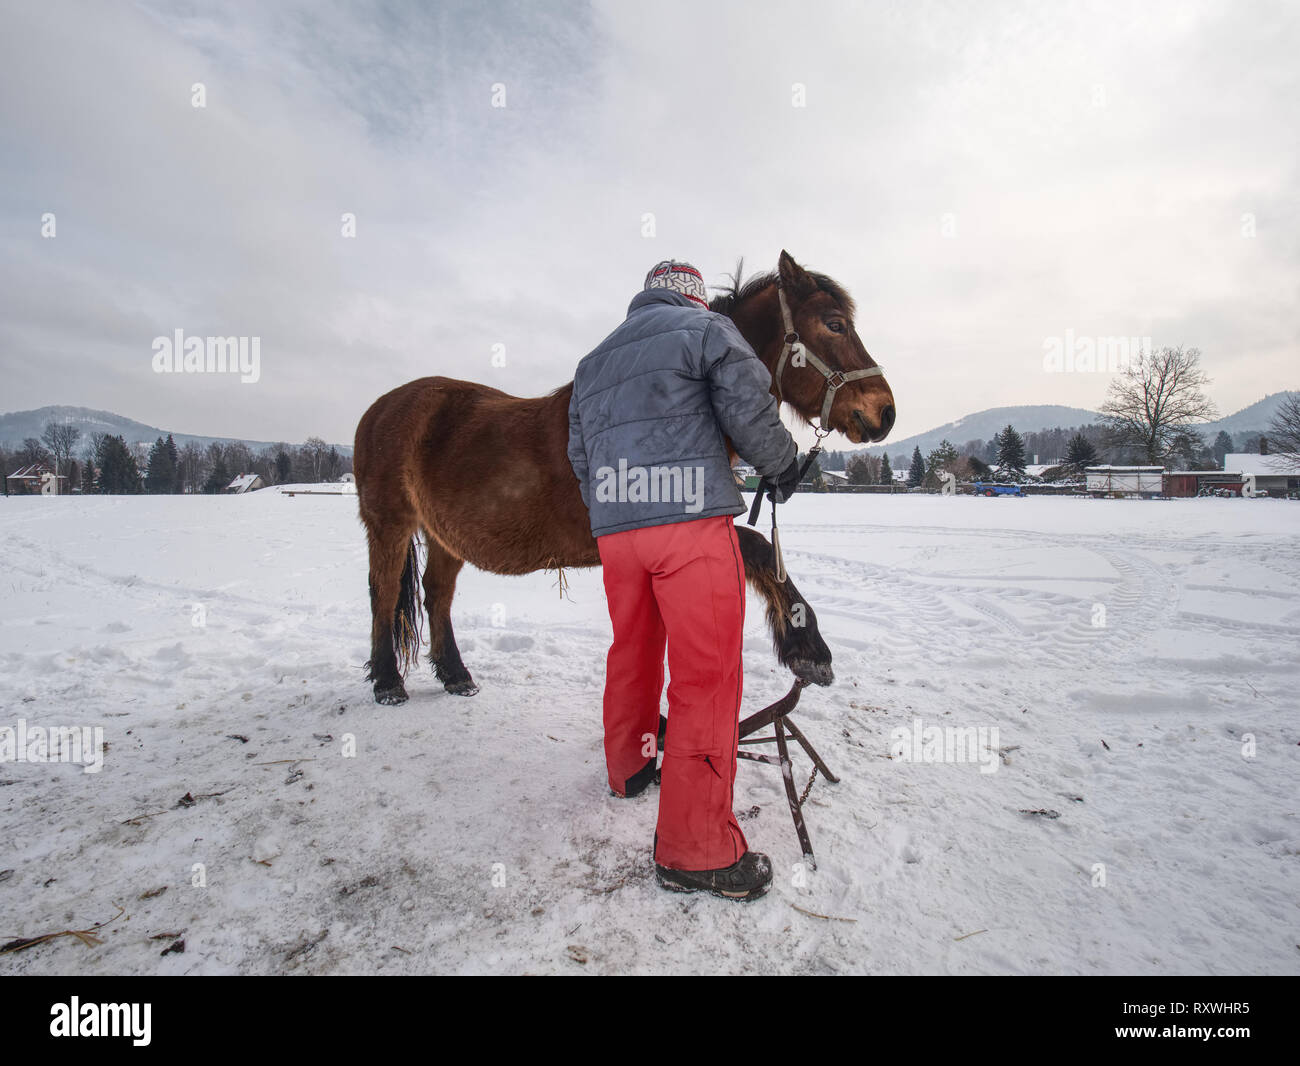 Farrier assistant keep horse with front leg on steel tripod. Regular hoof check within winter time on mountain horse farm. - Stock Image